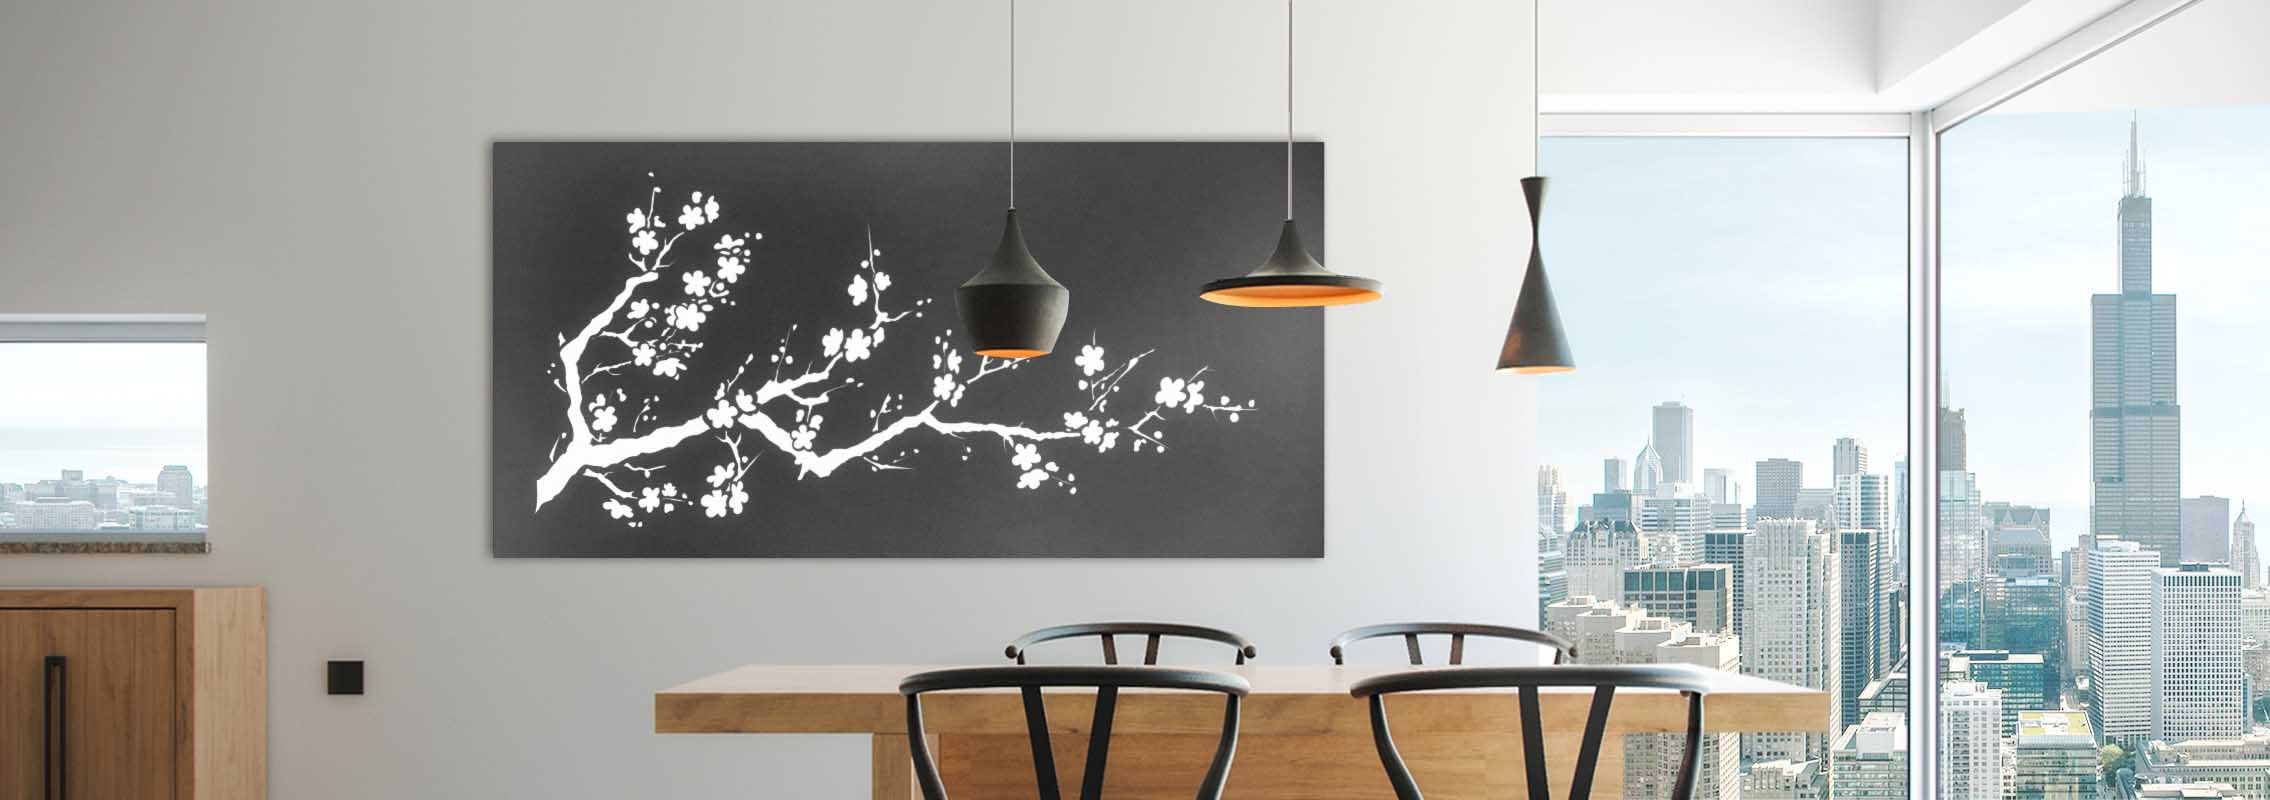 Laser Cut Branch Pattern In A Dinnig Area With Wooden Elements